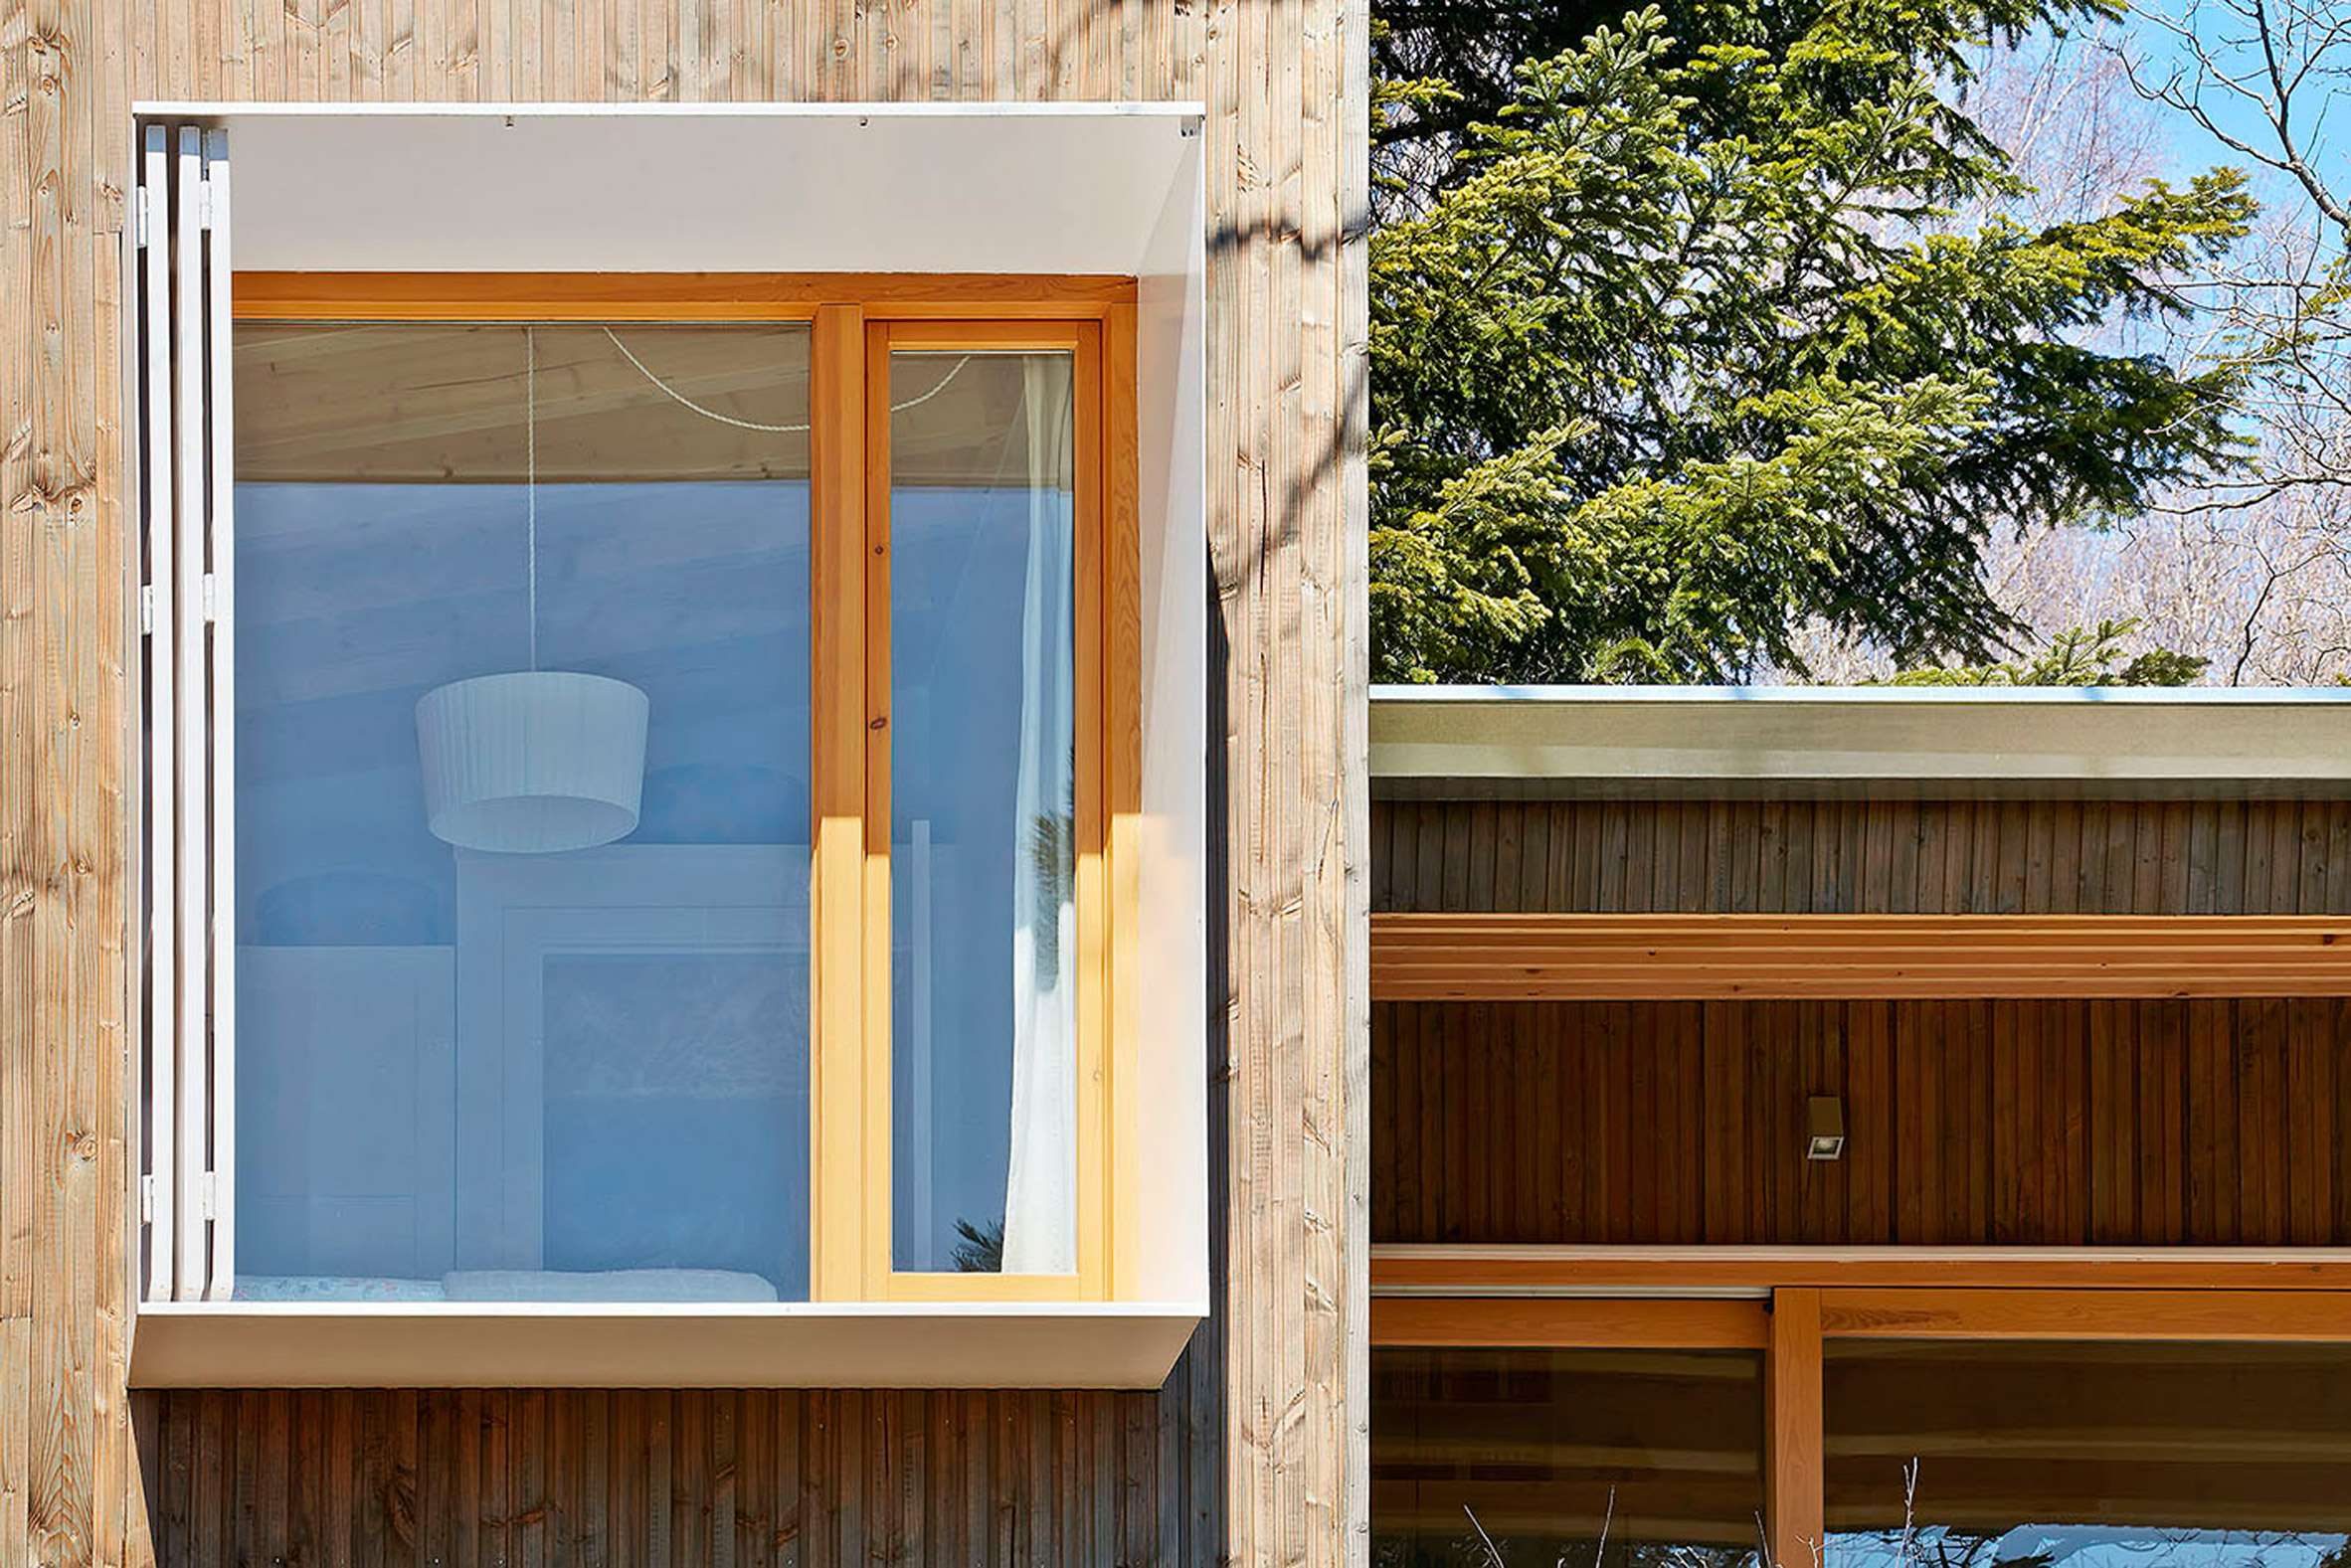 10. Prefababricated wooden home in the Pyrenees by architect Marc Mogas - Prefabricated wooden home in the Pyrenees by architect Marc Mogas